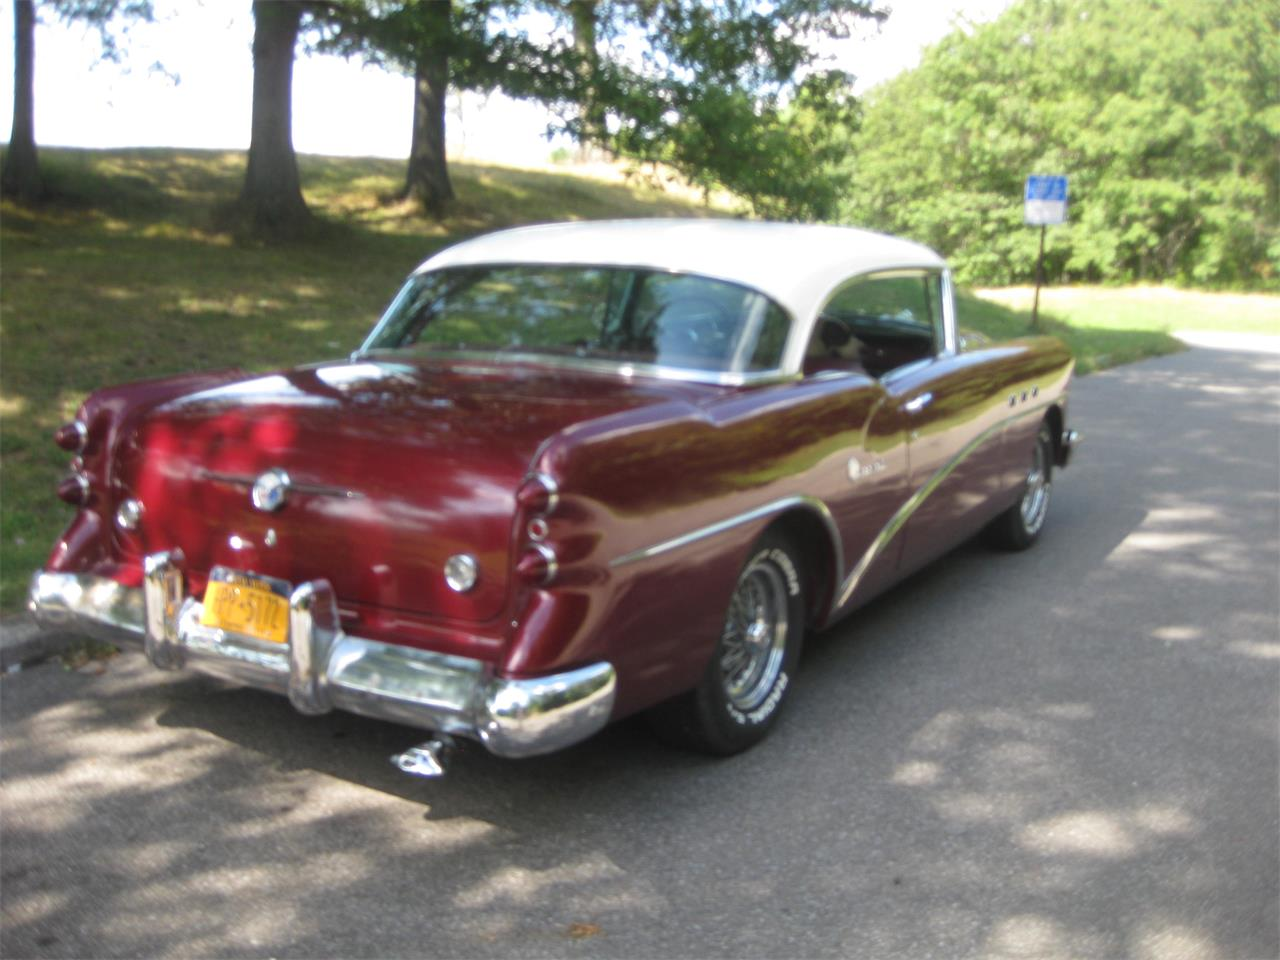 Large Picture of 1954 Special Riviera - $38,000.00 Offered by a Private Seller - P3R9